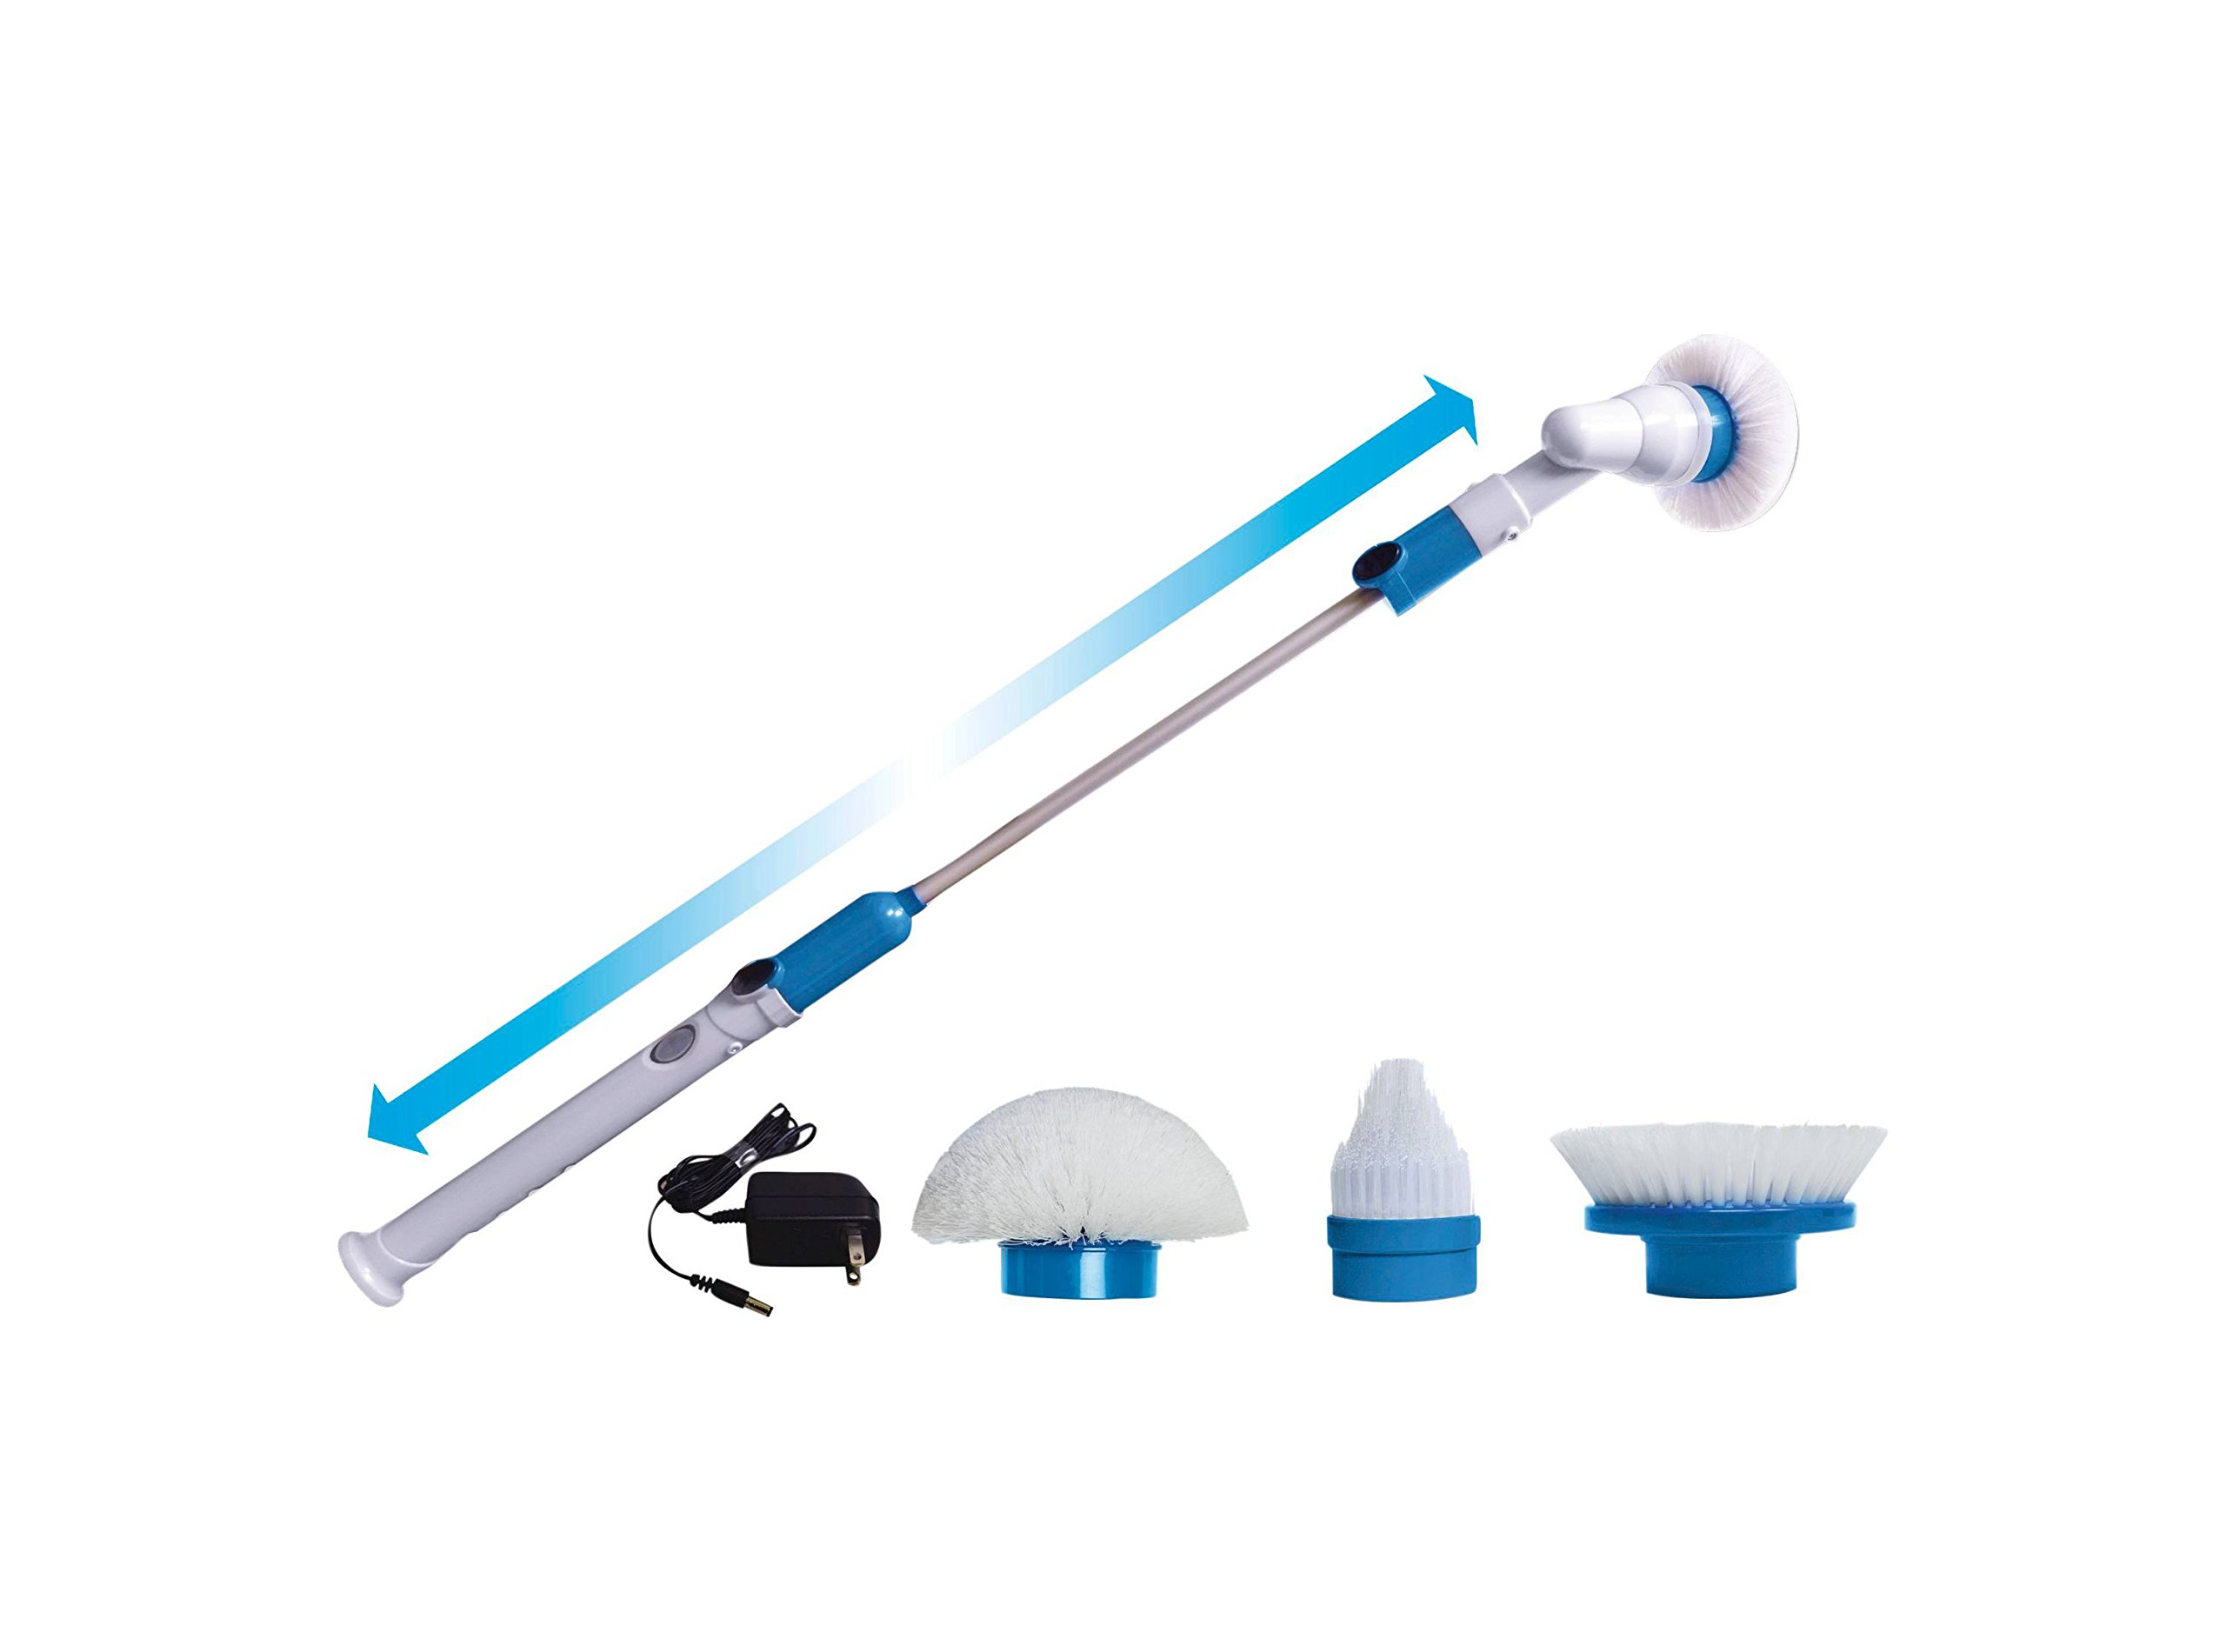 Hurricane Spin Scrubber | Includes 3 Scrubbing Heads and Charger | As Seen On TV